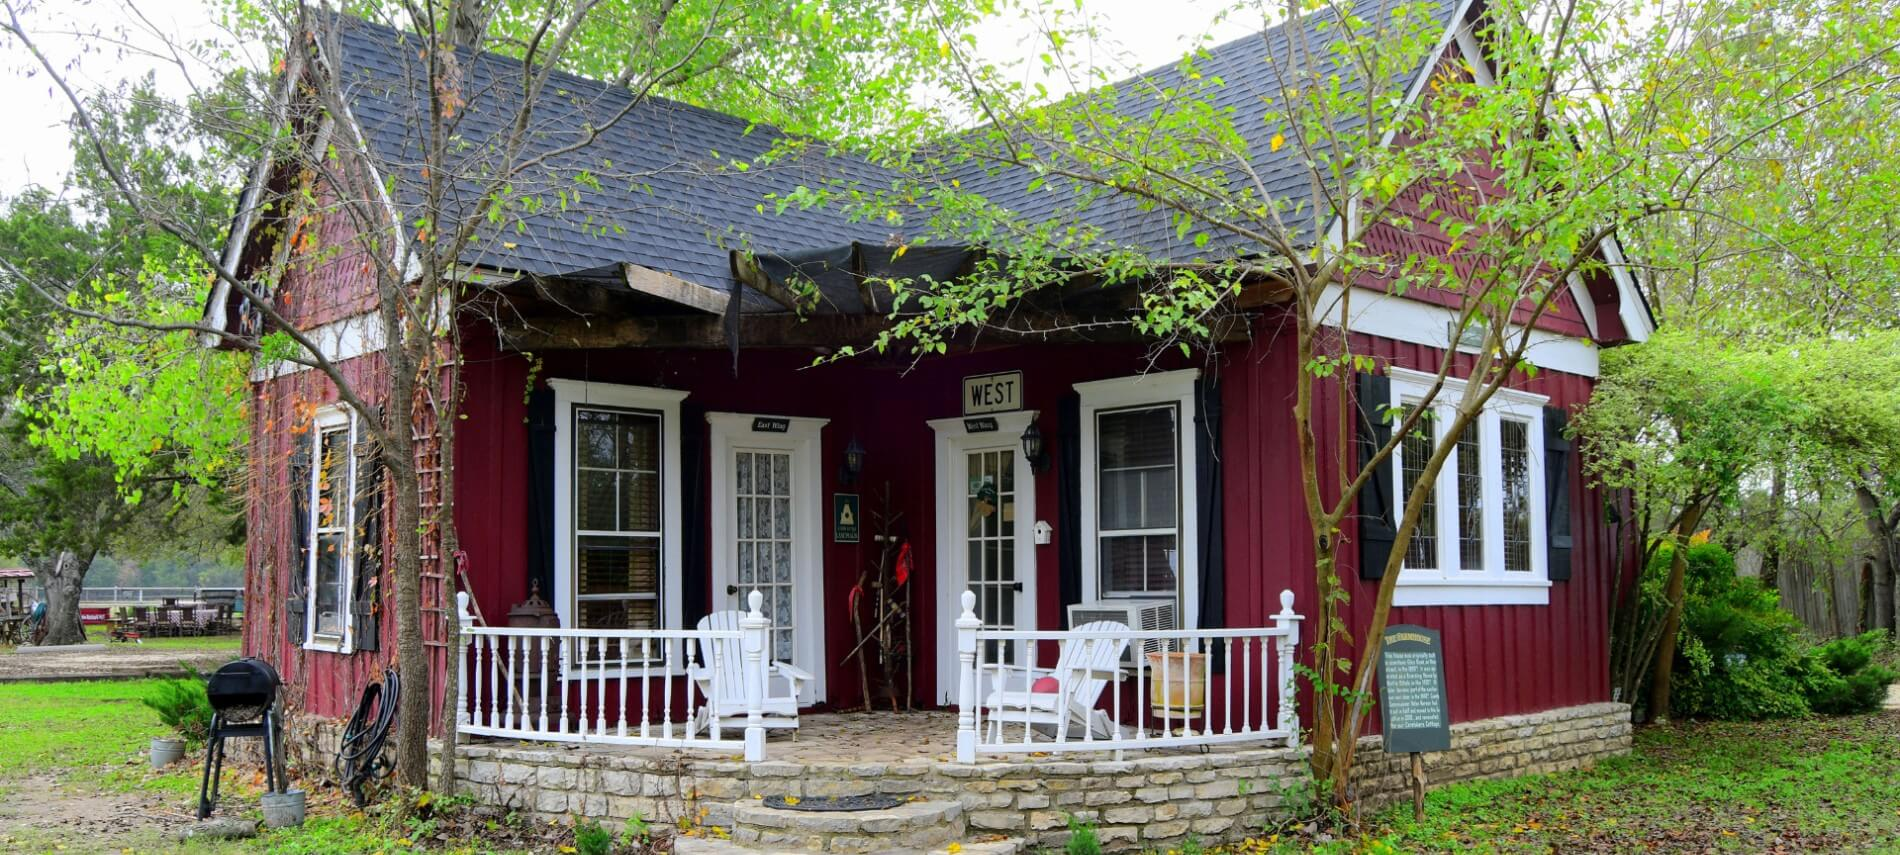 Cute red cabin with black roof and shutters with a stone porch.